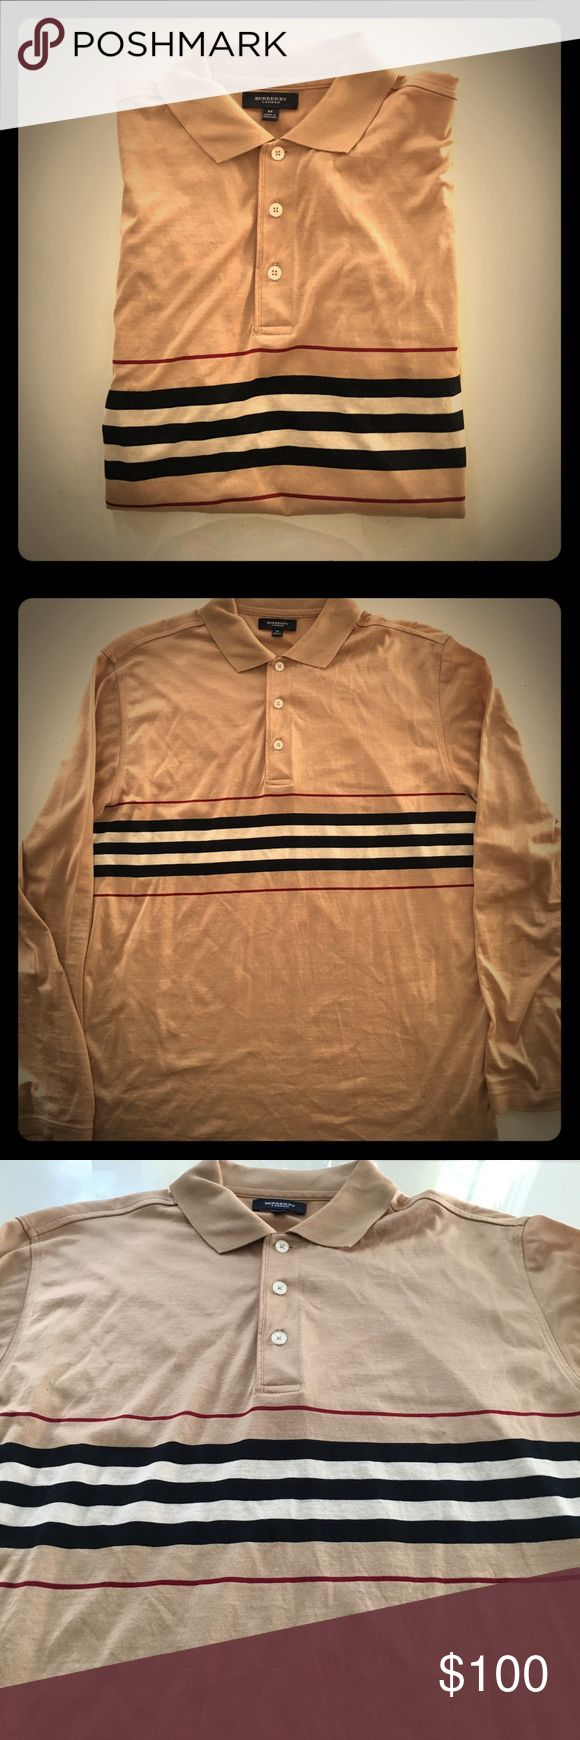 Burberry Men's Long Sleeve Polo Shirt Size Medium Pristine condition, 3-button collar, lightweight 100% cotton, long-sleeve, classic Burberry tan color with stripes along the chest. I can measure if you ask but it fits pretty true to size. Burberry Shirts Polos